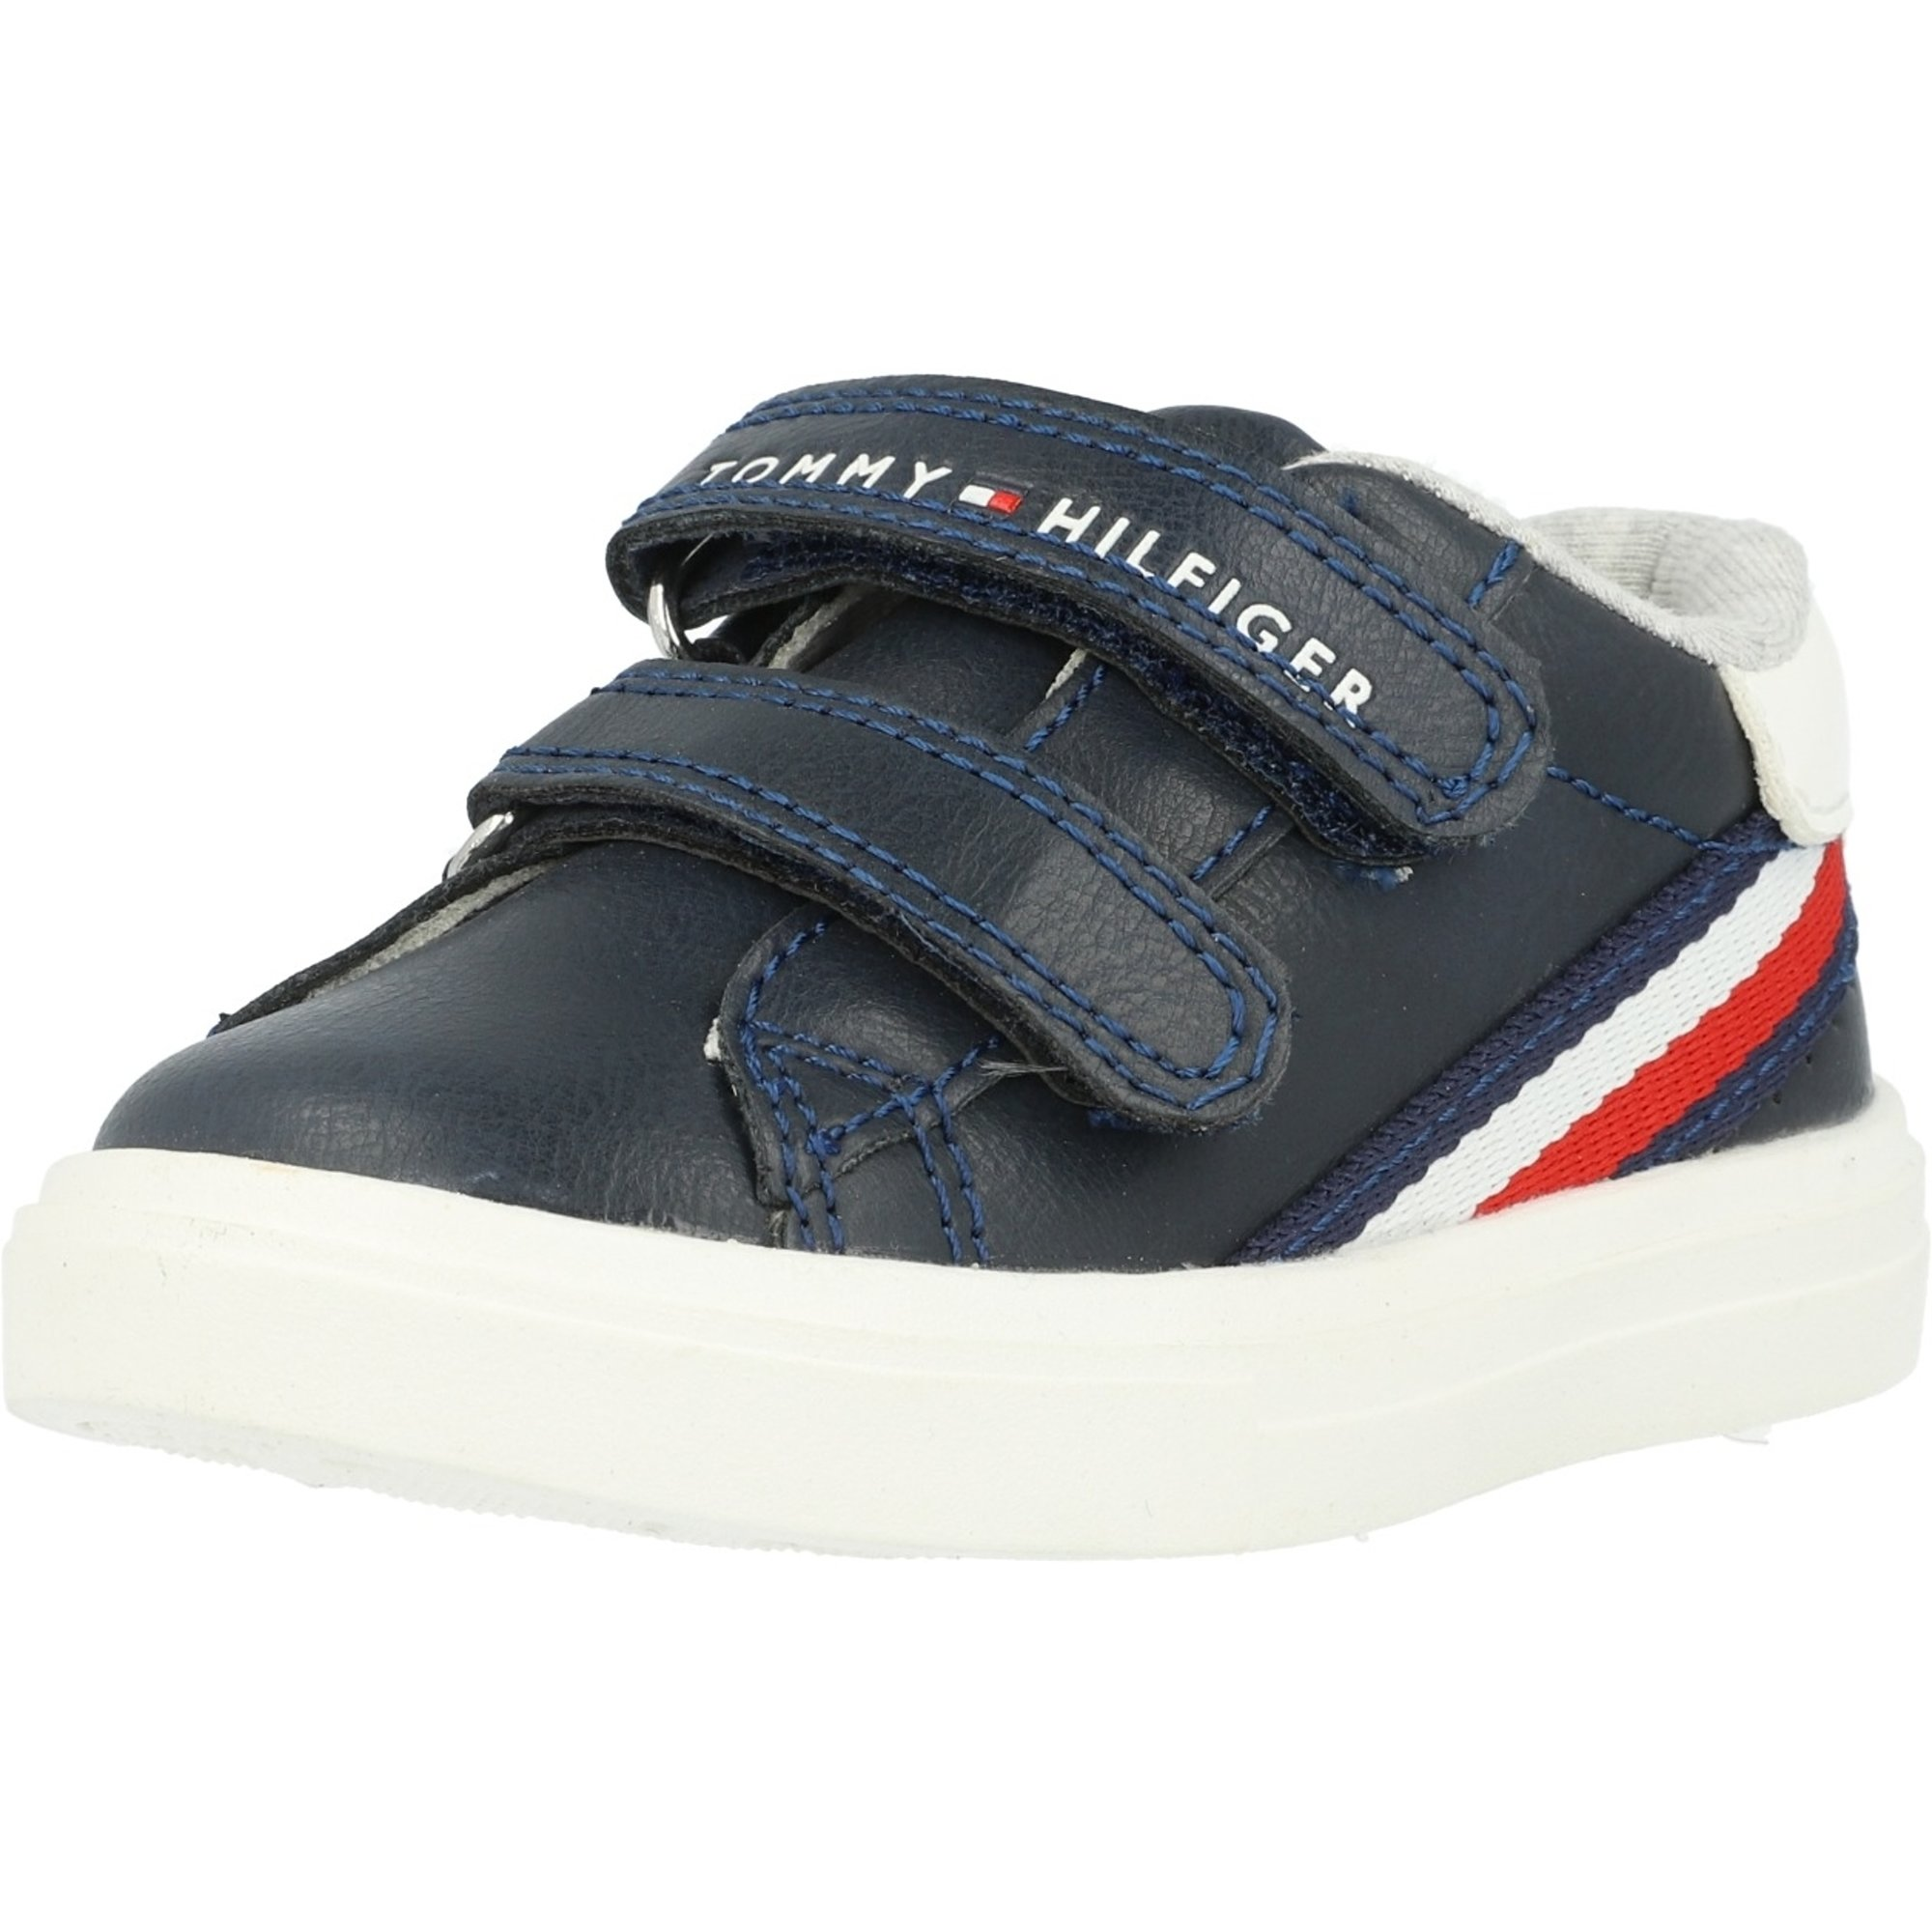 new styles later best sale Tommy Hilfiger Trainer Blue/White Eco Leather - Sneakers Shoes ...